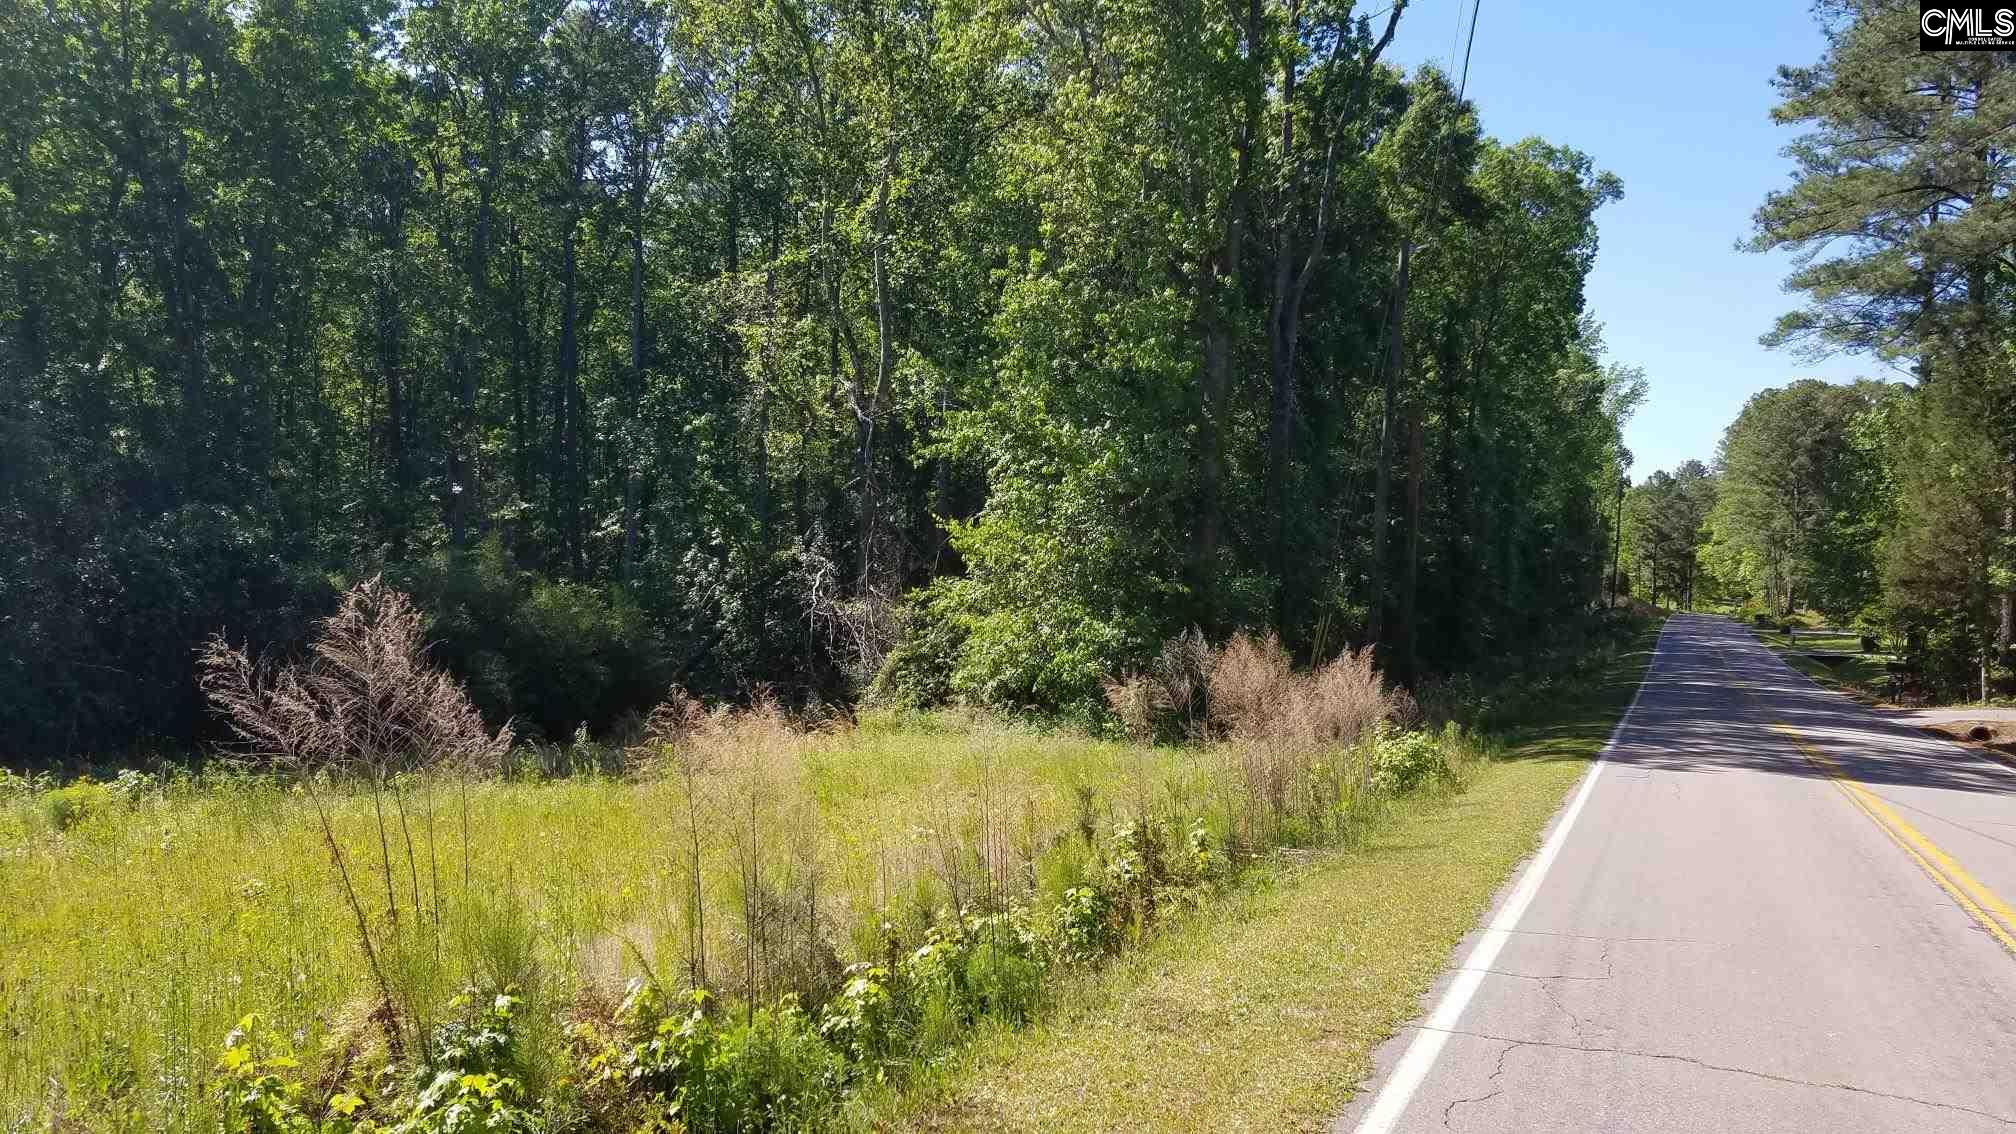 17.2 ACRES MOSTLY COVERED WITH HARDWOOD TREES.  OFFERED FOR SALE AS A 17.2 ACRE TRACT ONLY. AFTER PURCHASE, NEW OWNER MAY SUBDIVIDE INTO A MAXIMUM OF FIFTEEN (15) LOTS.